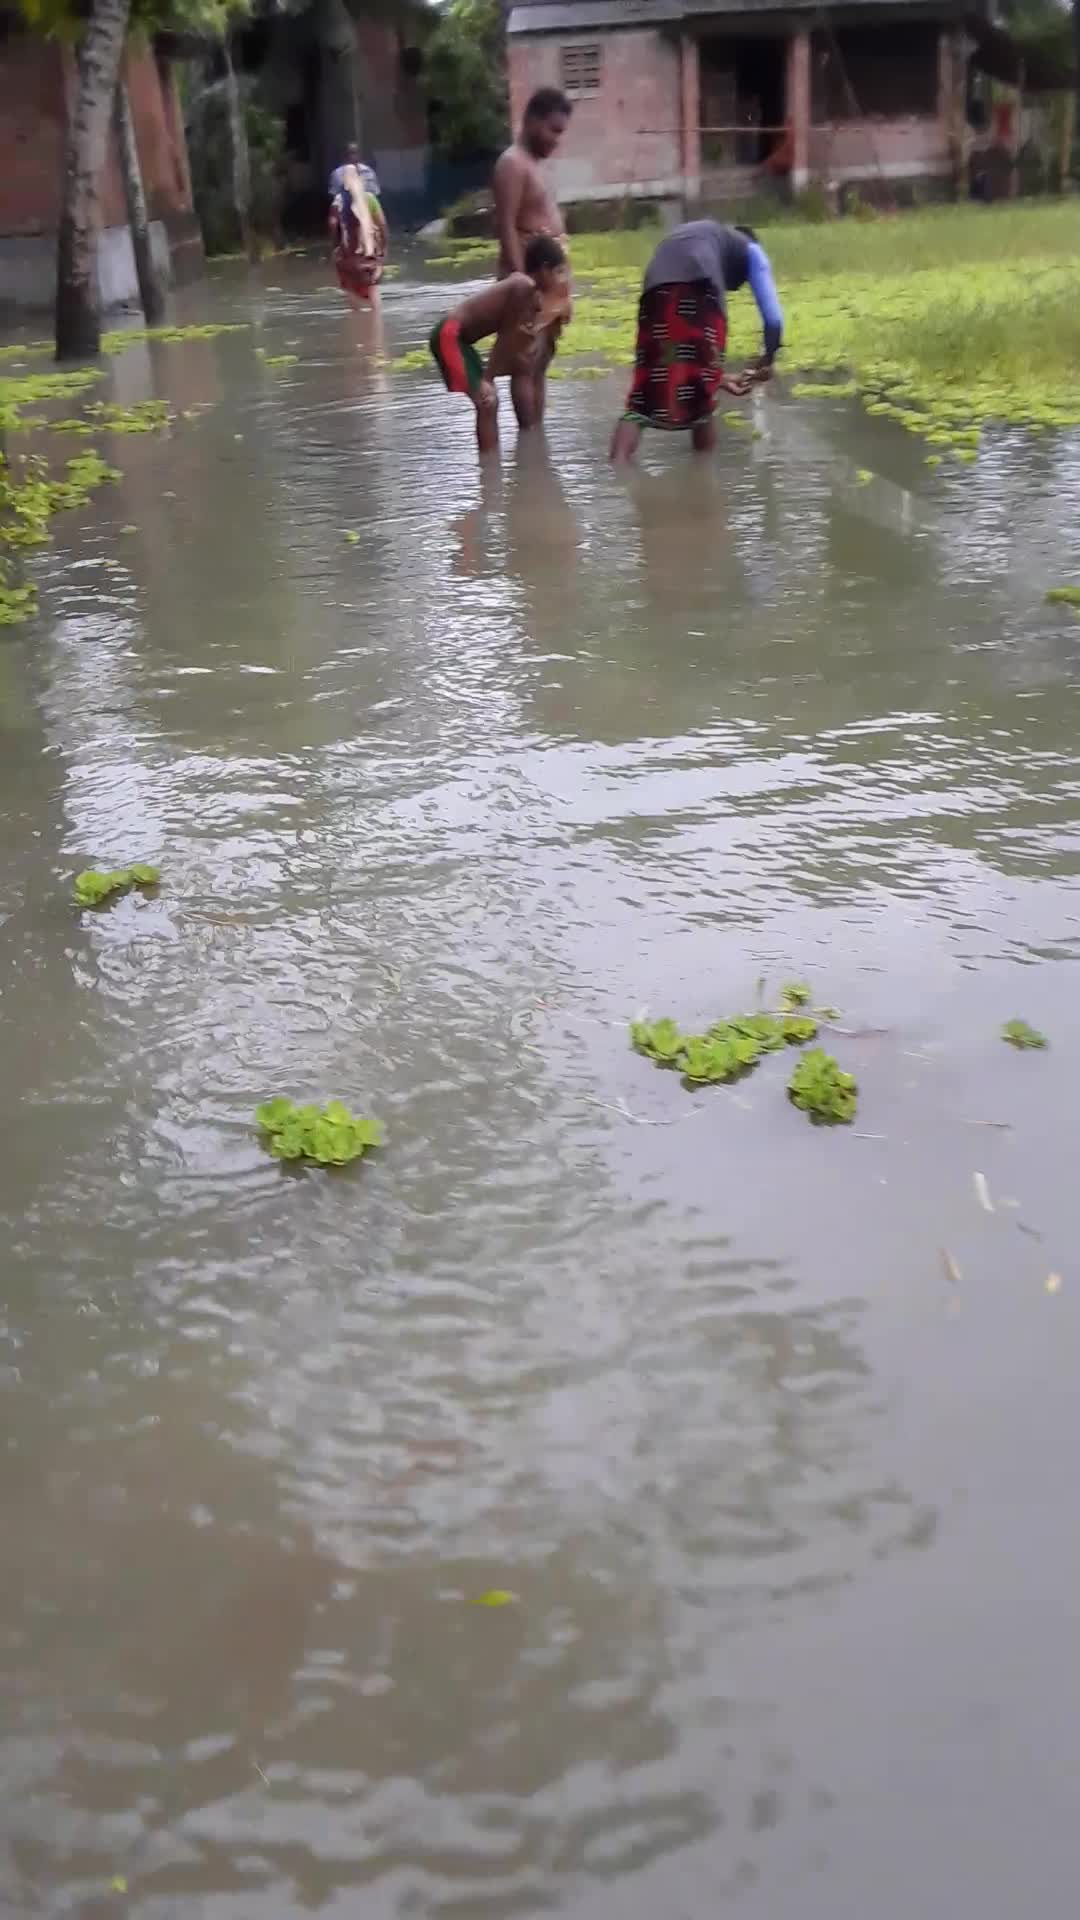 A video of the wild flooded area.